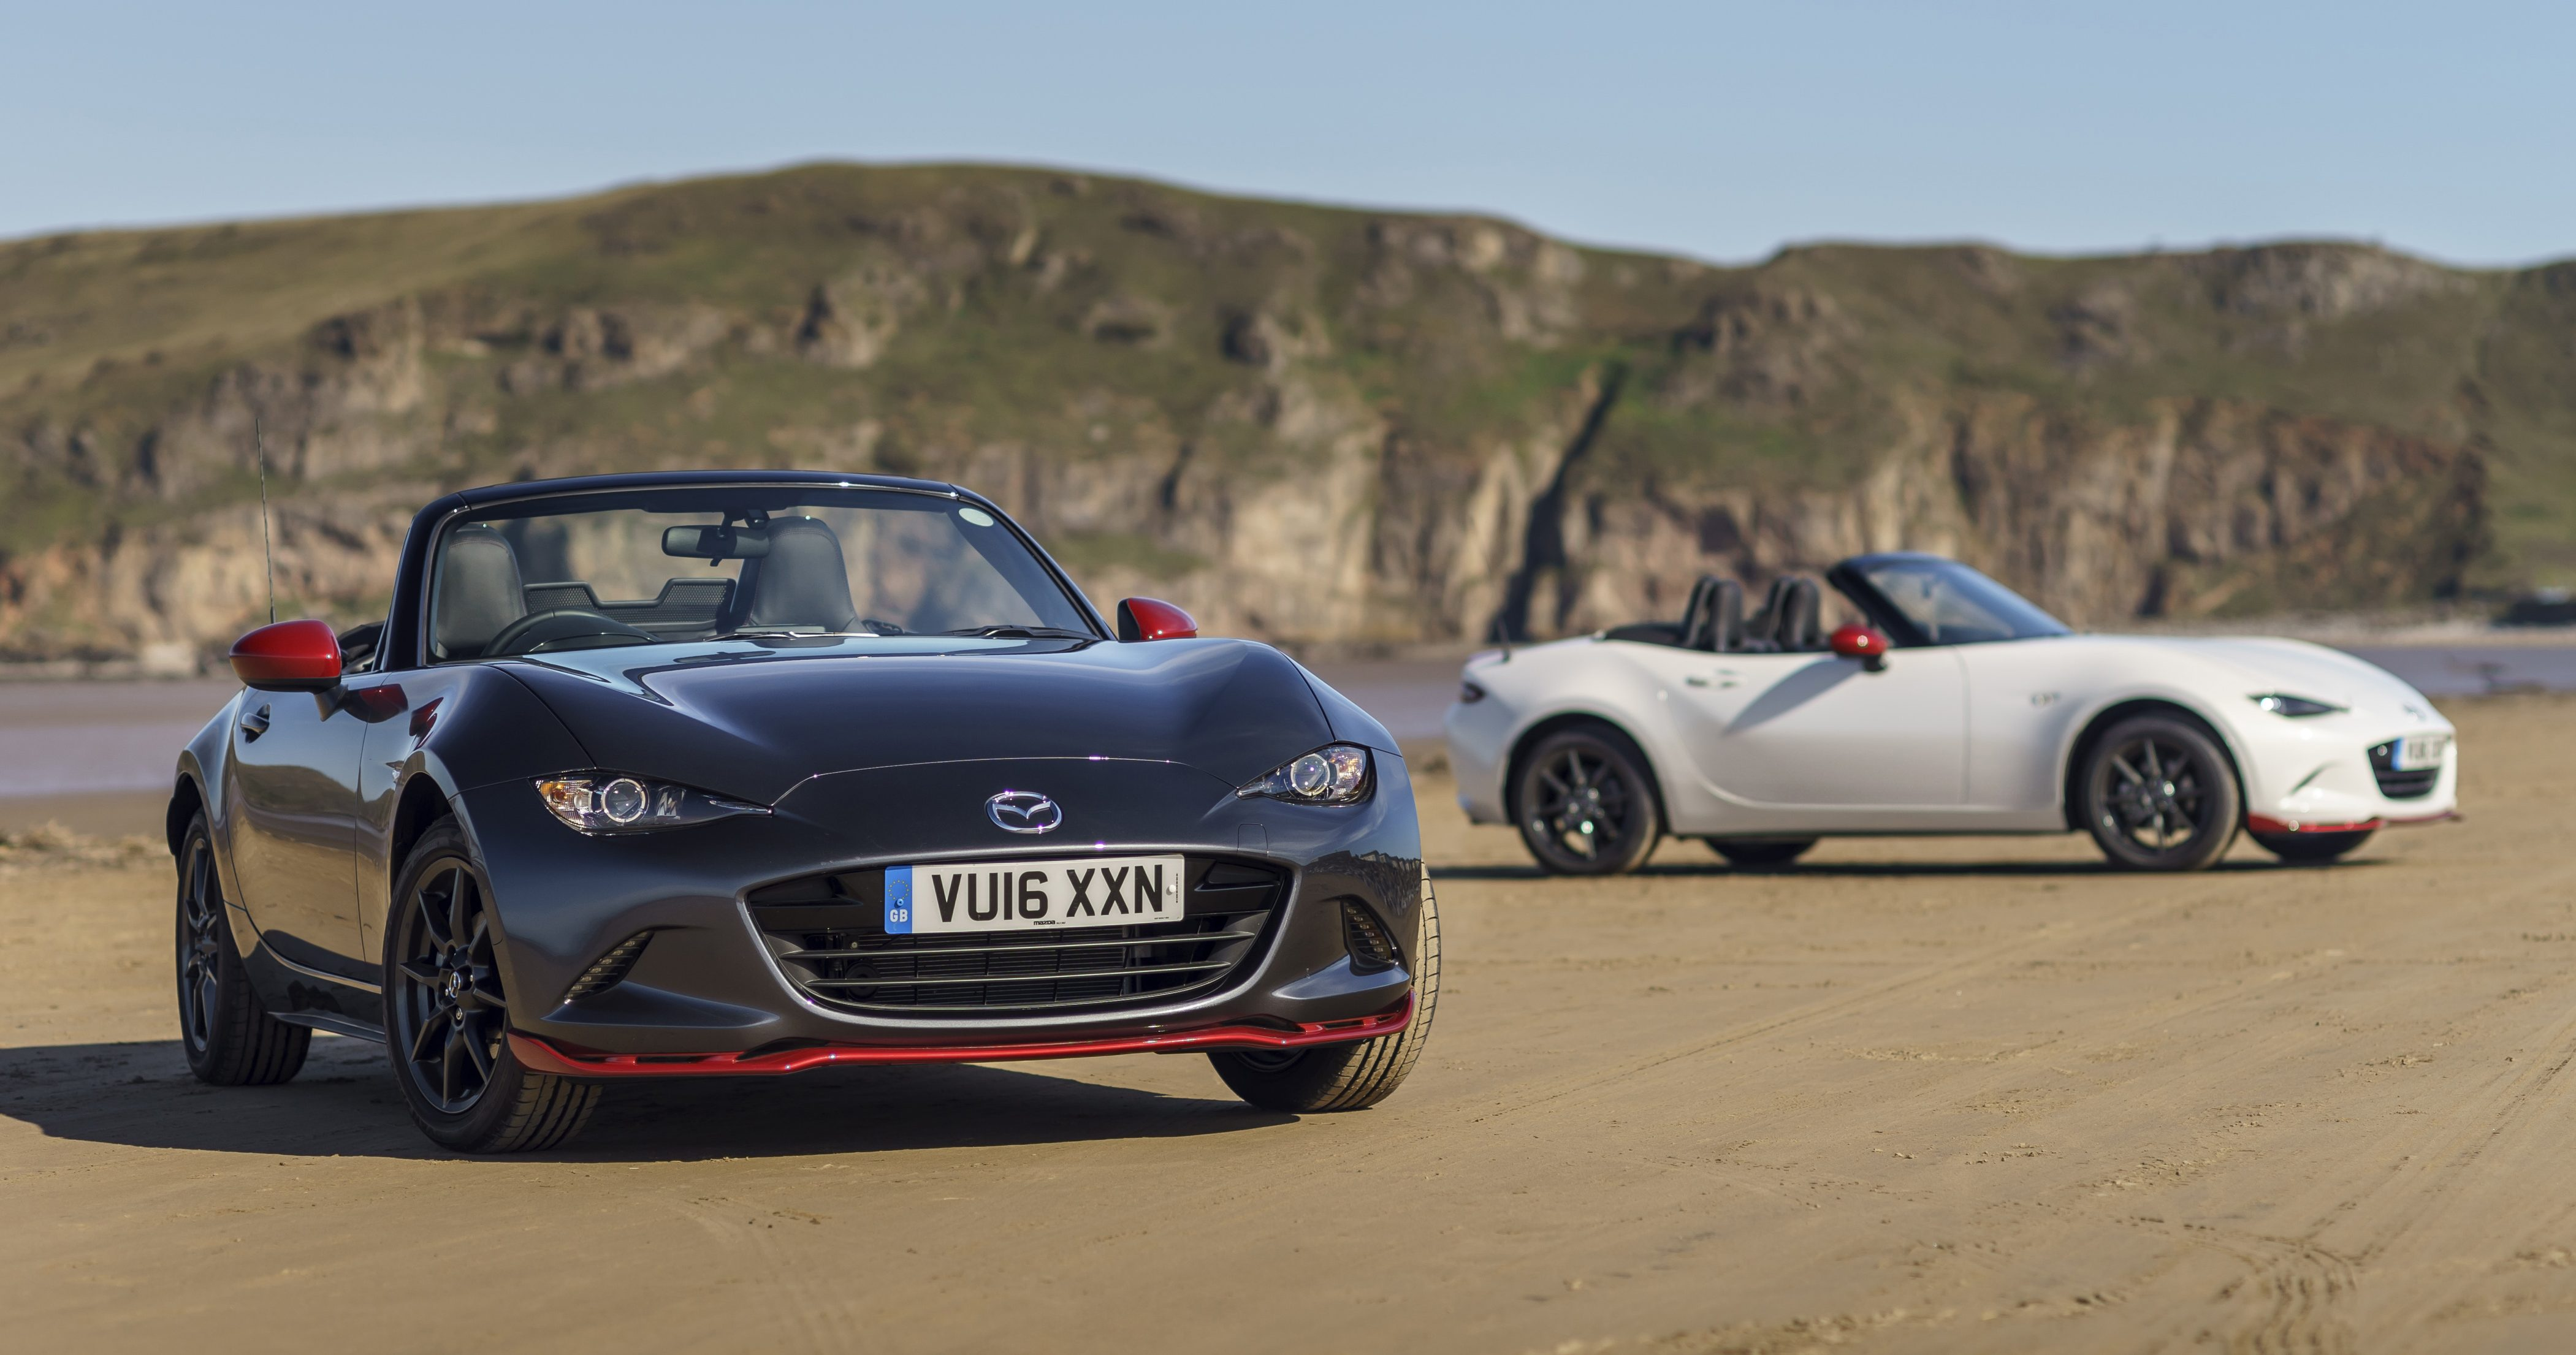 mazda mx 5 icon launched in the uk 600 units only. Black Bedroom Furniture Sets. Home Design Ideas